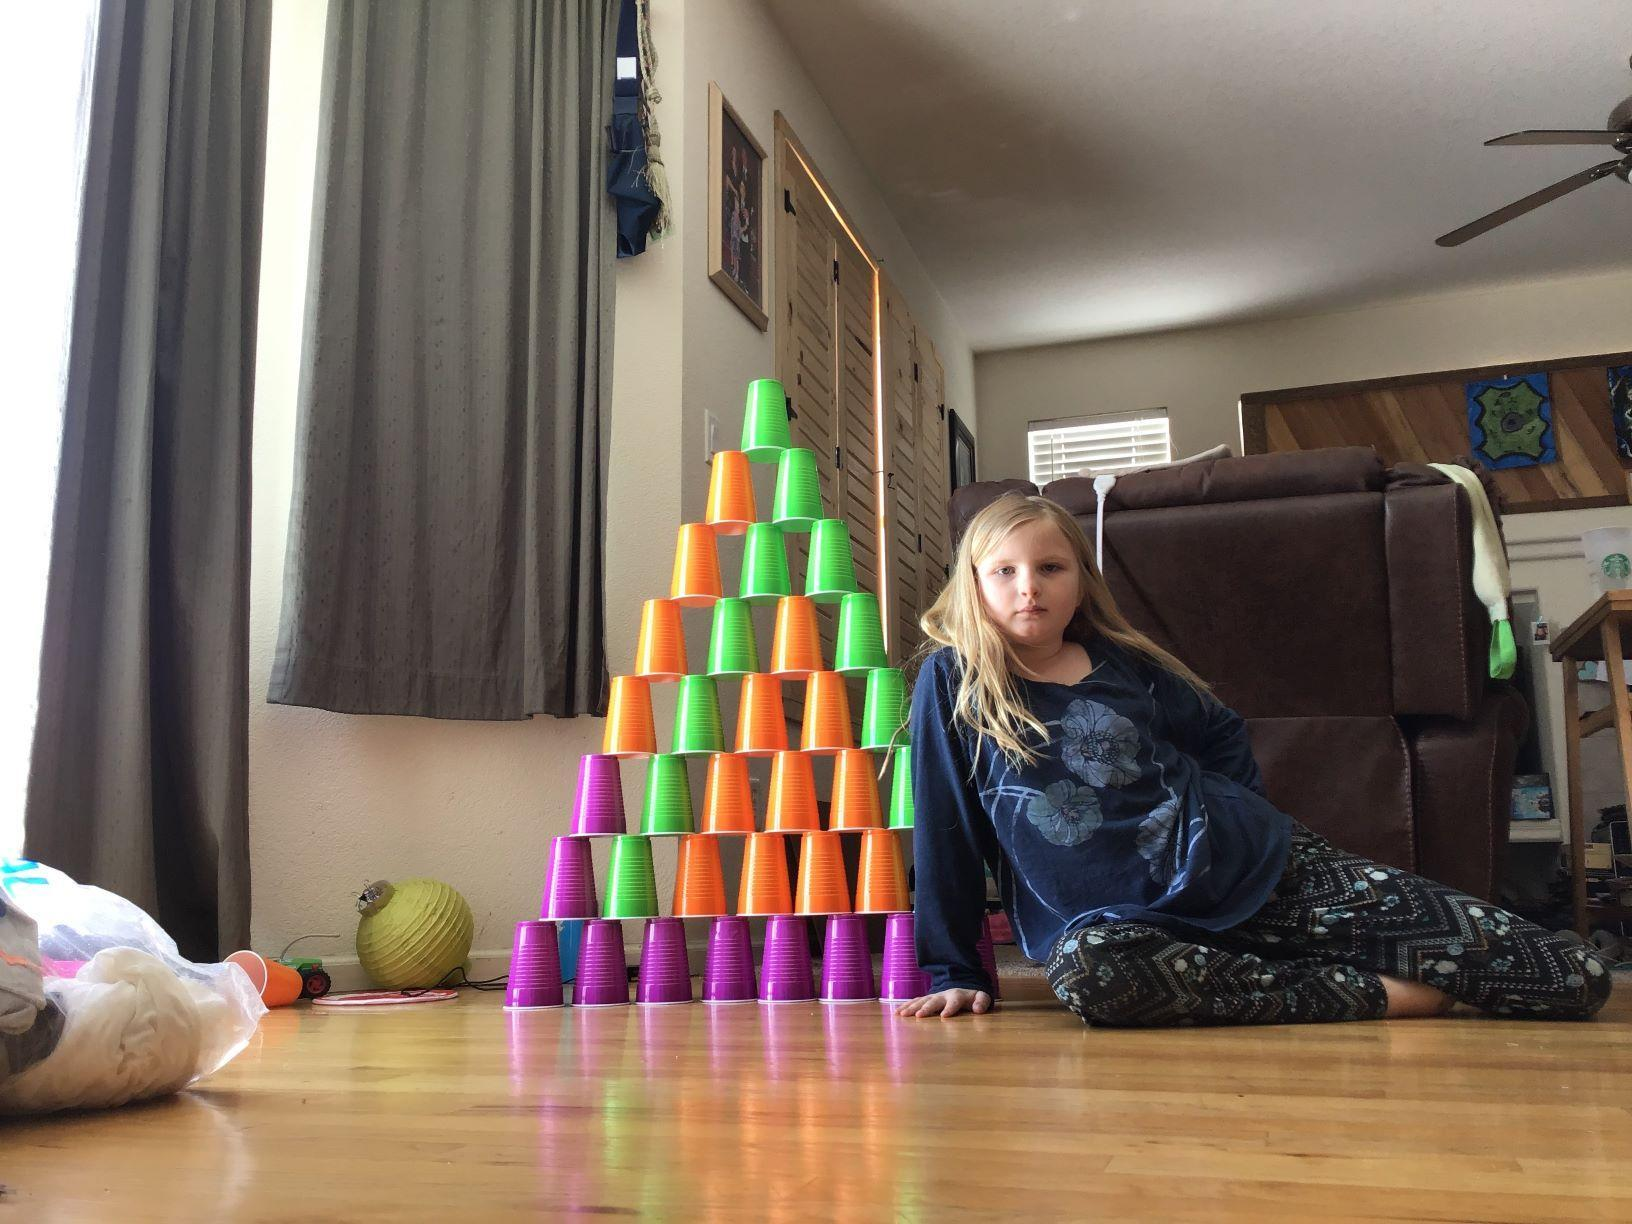 student at home behind pyramid of stacked cups